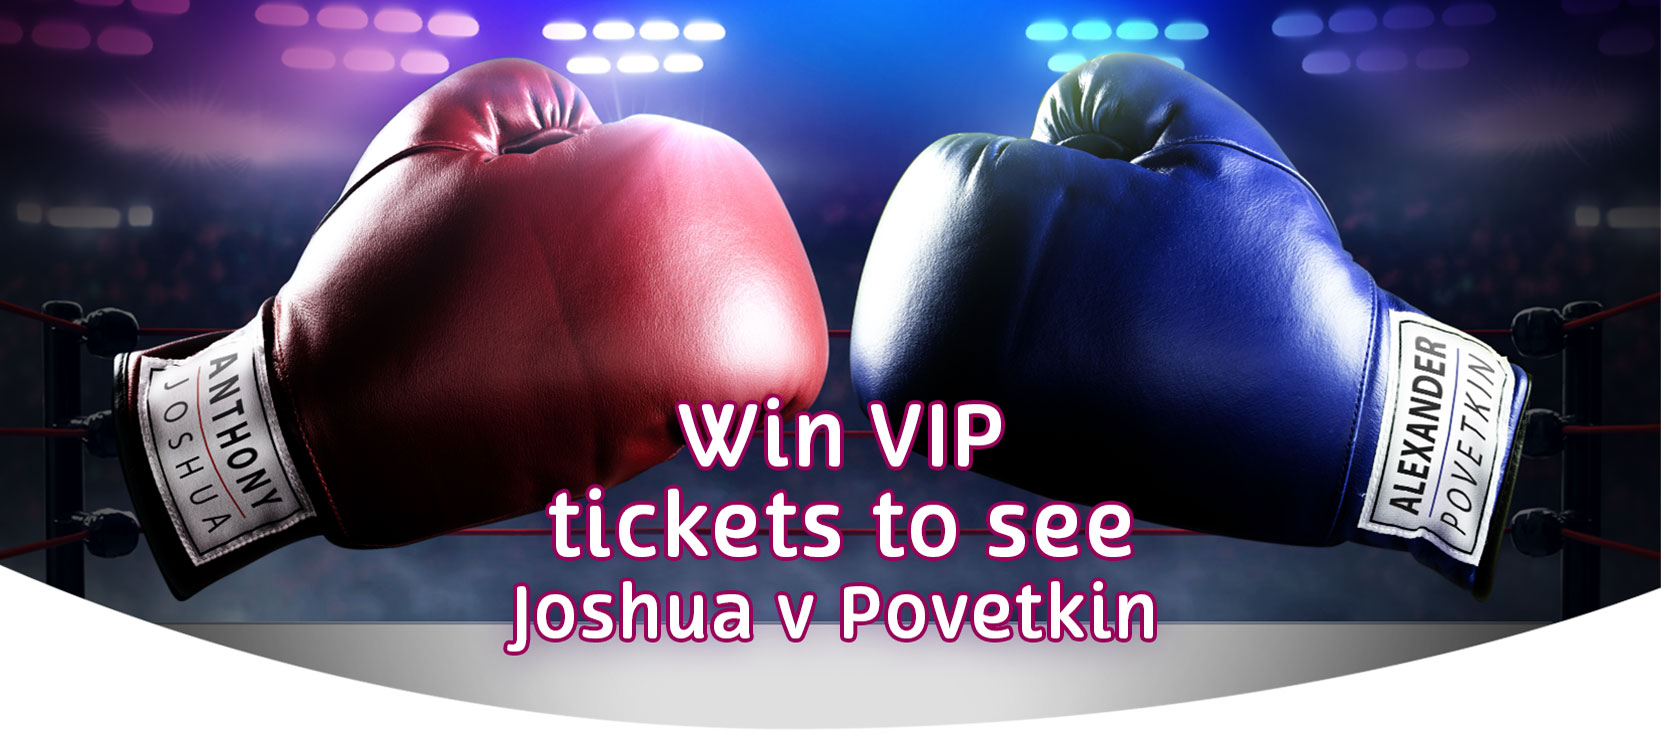 Win VIP tickets to see Joshua v Povetkin